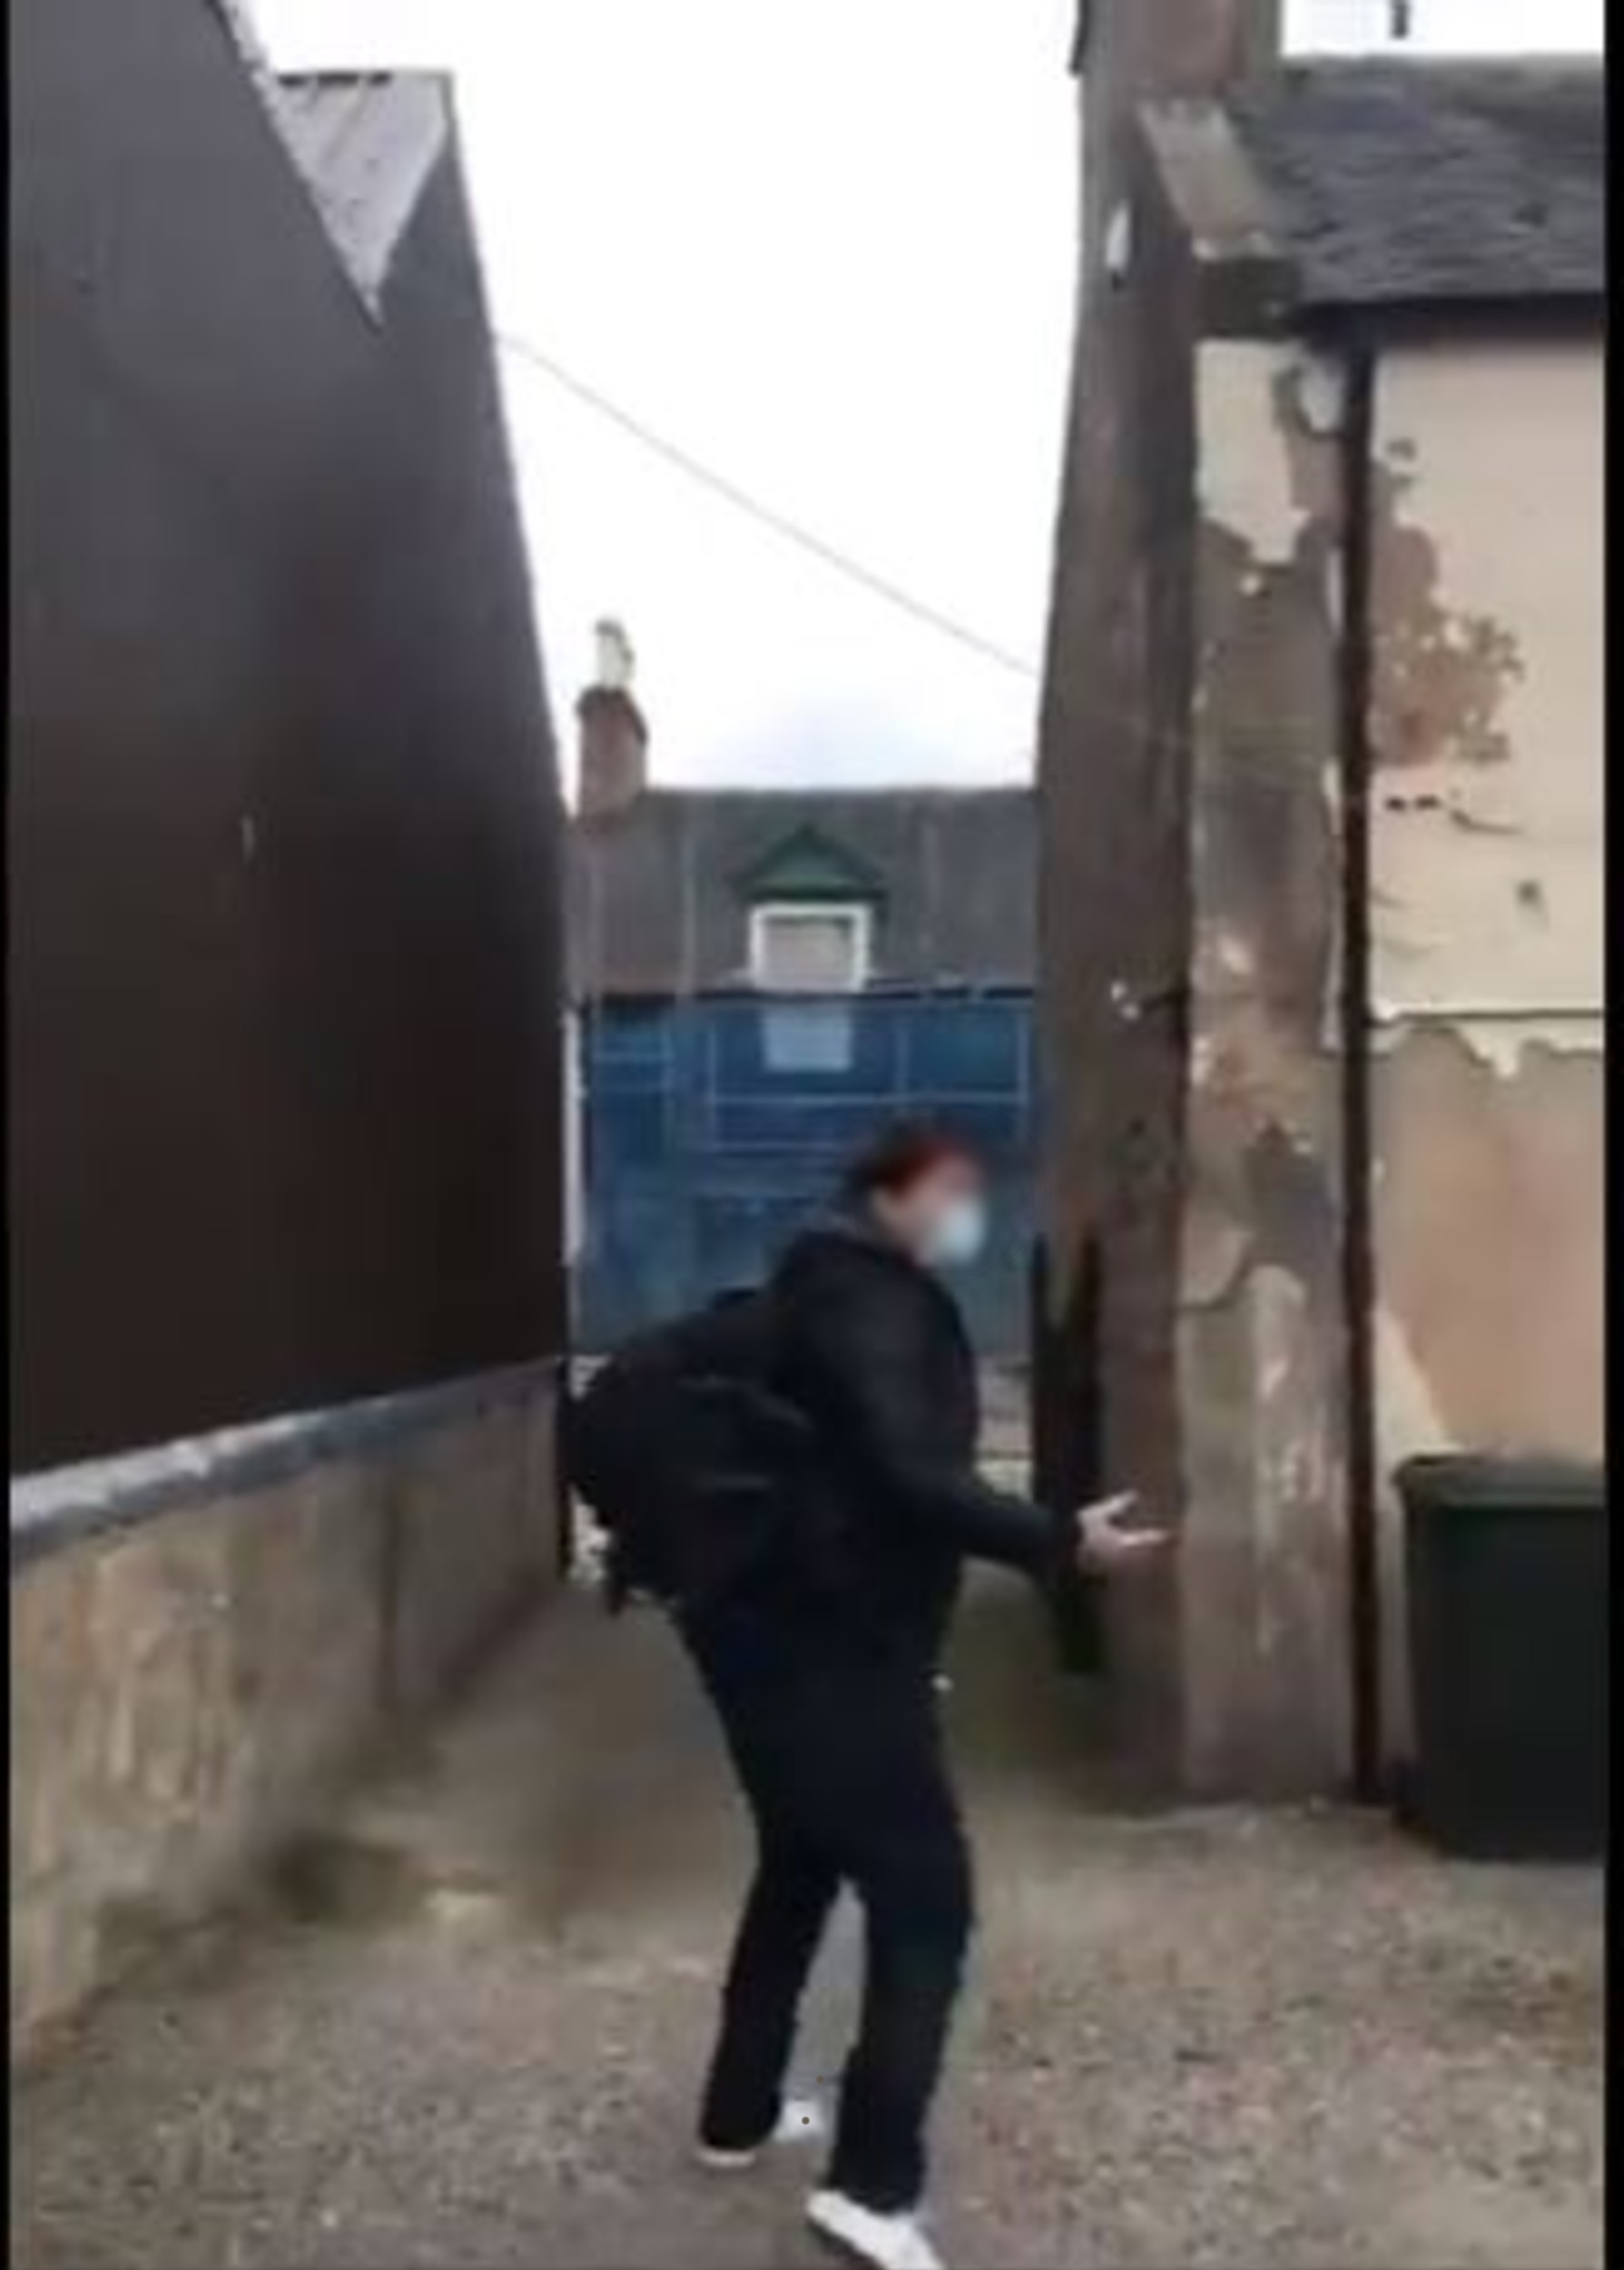 The masked man makes a run for it - Video Viral news Scotland